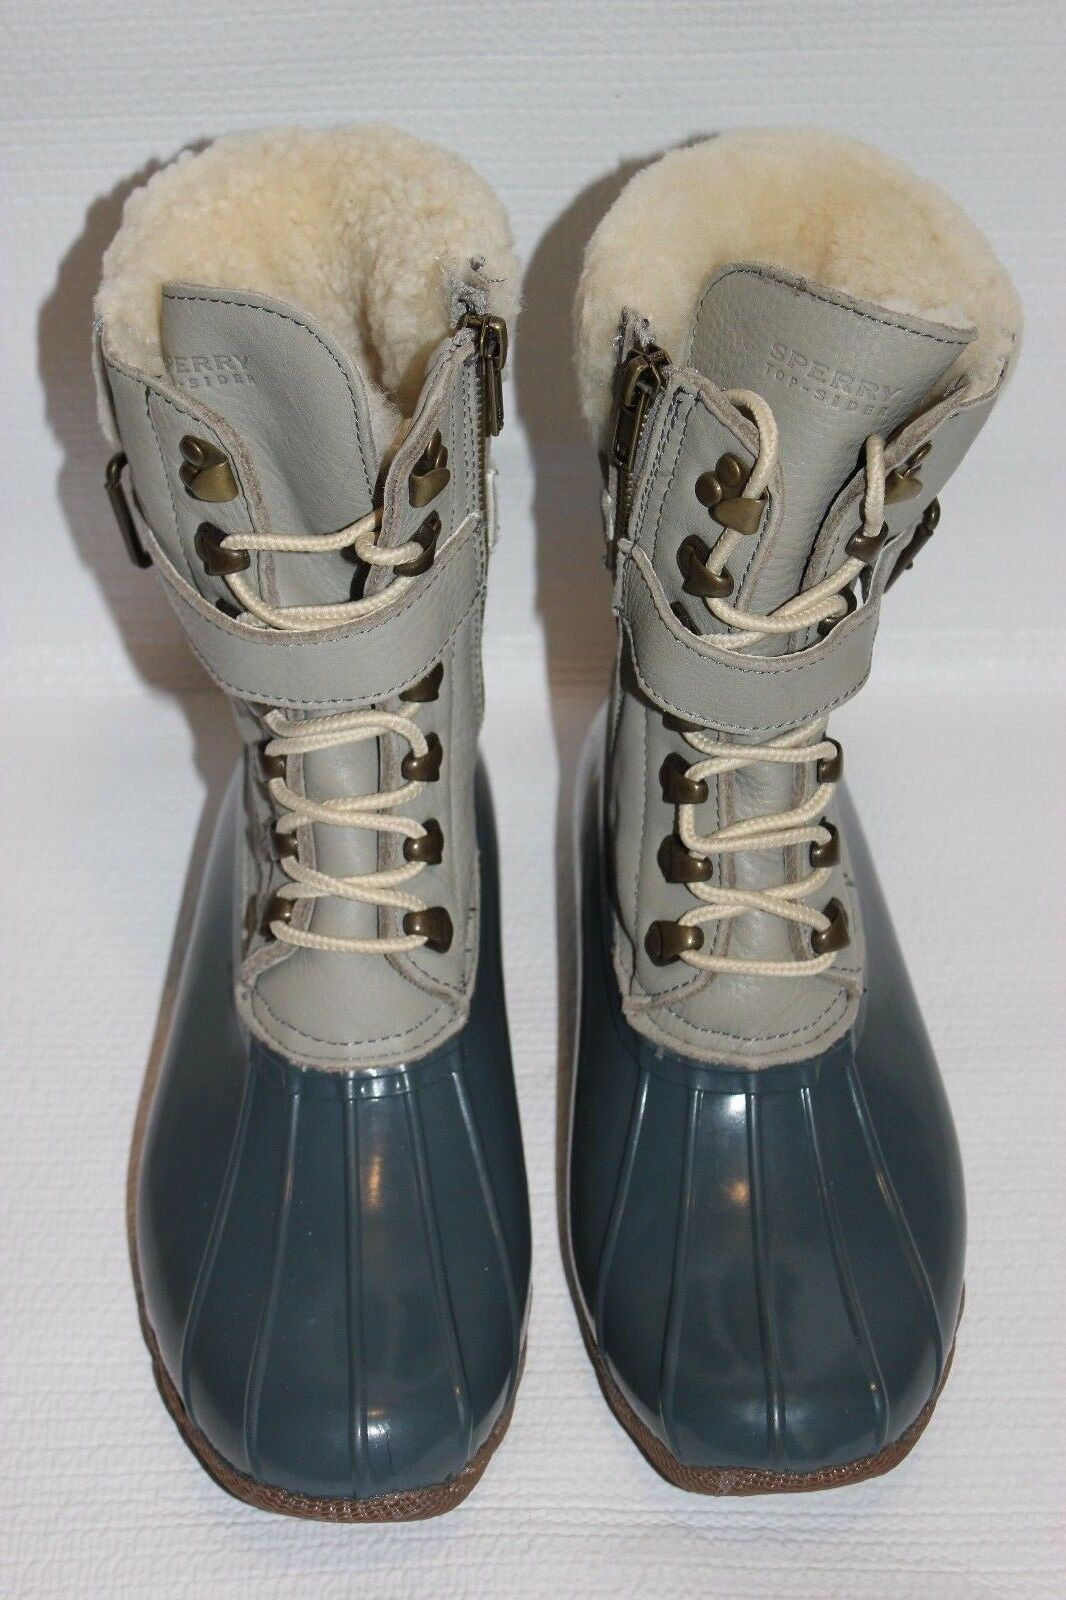 J CREW Sperry Top-Sider Leather Shearwater Boots 7M orchid grey ivory e2598